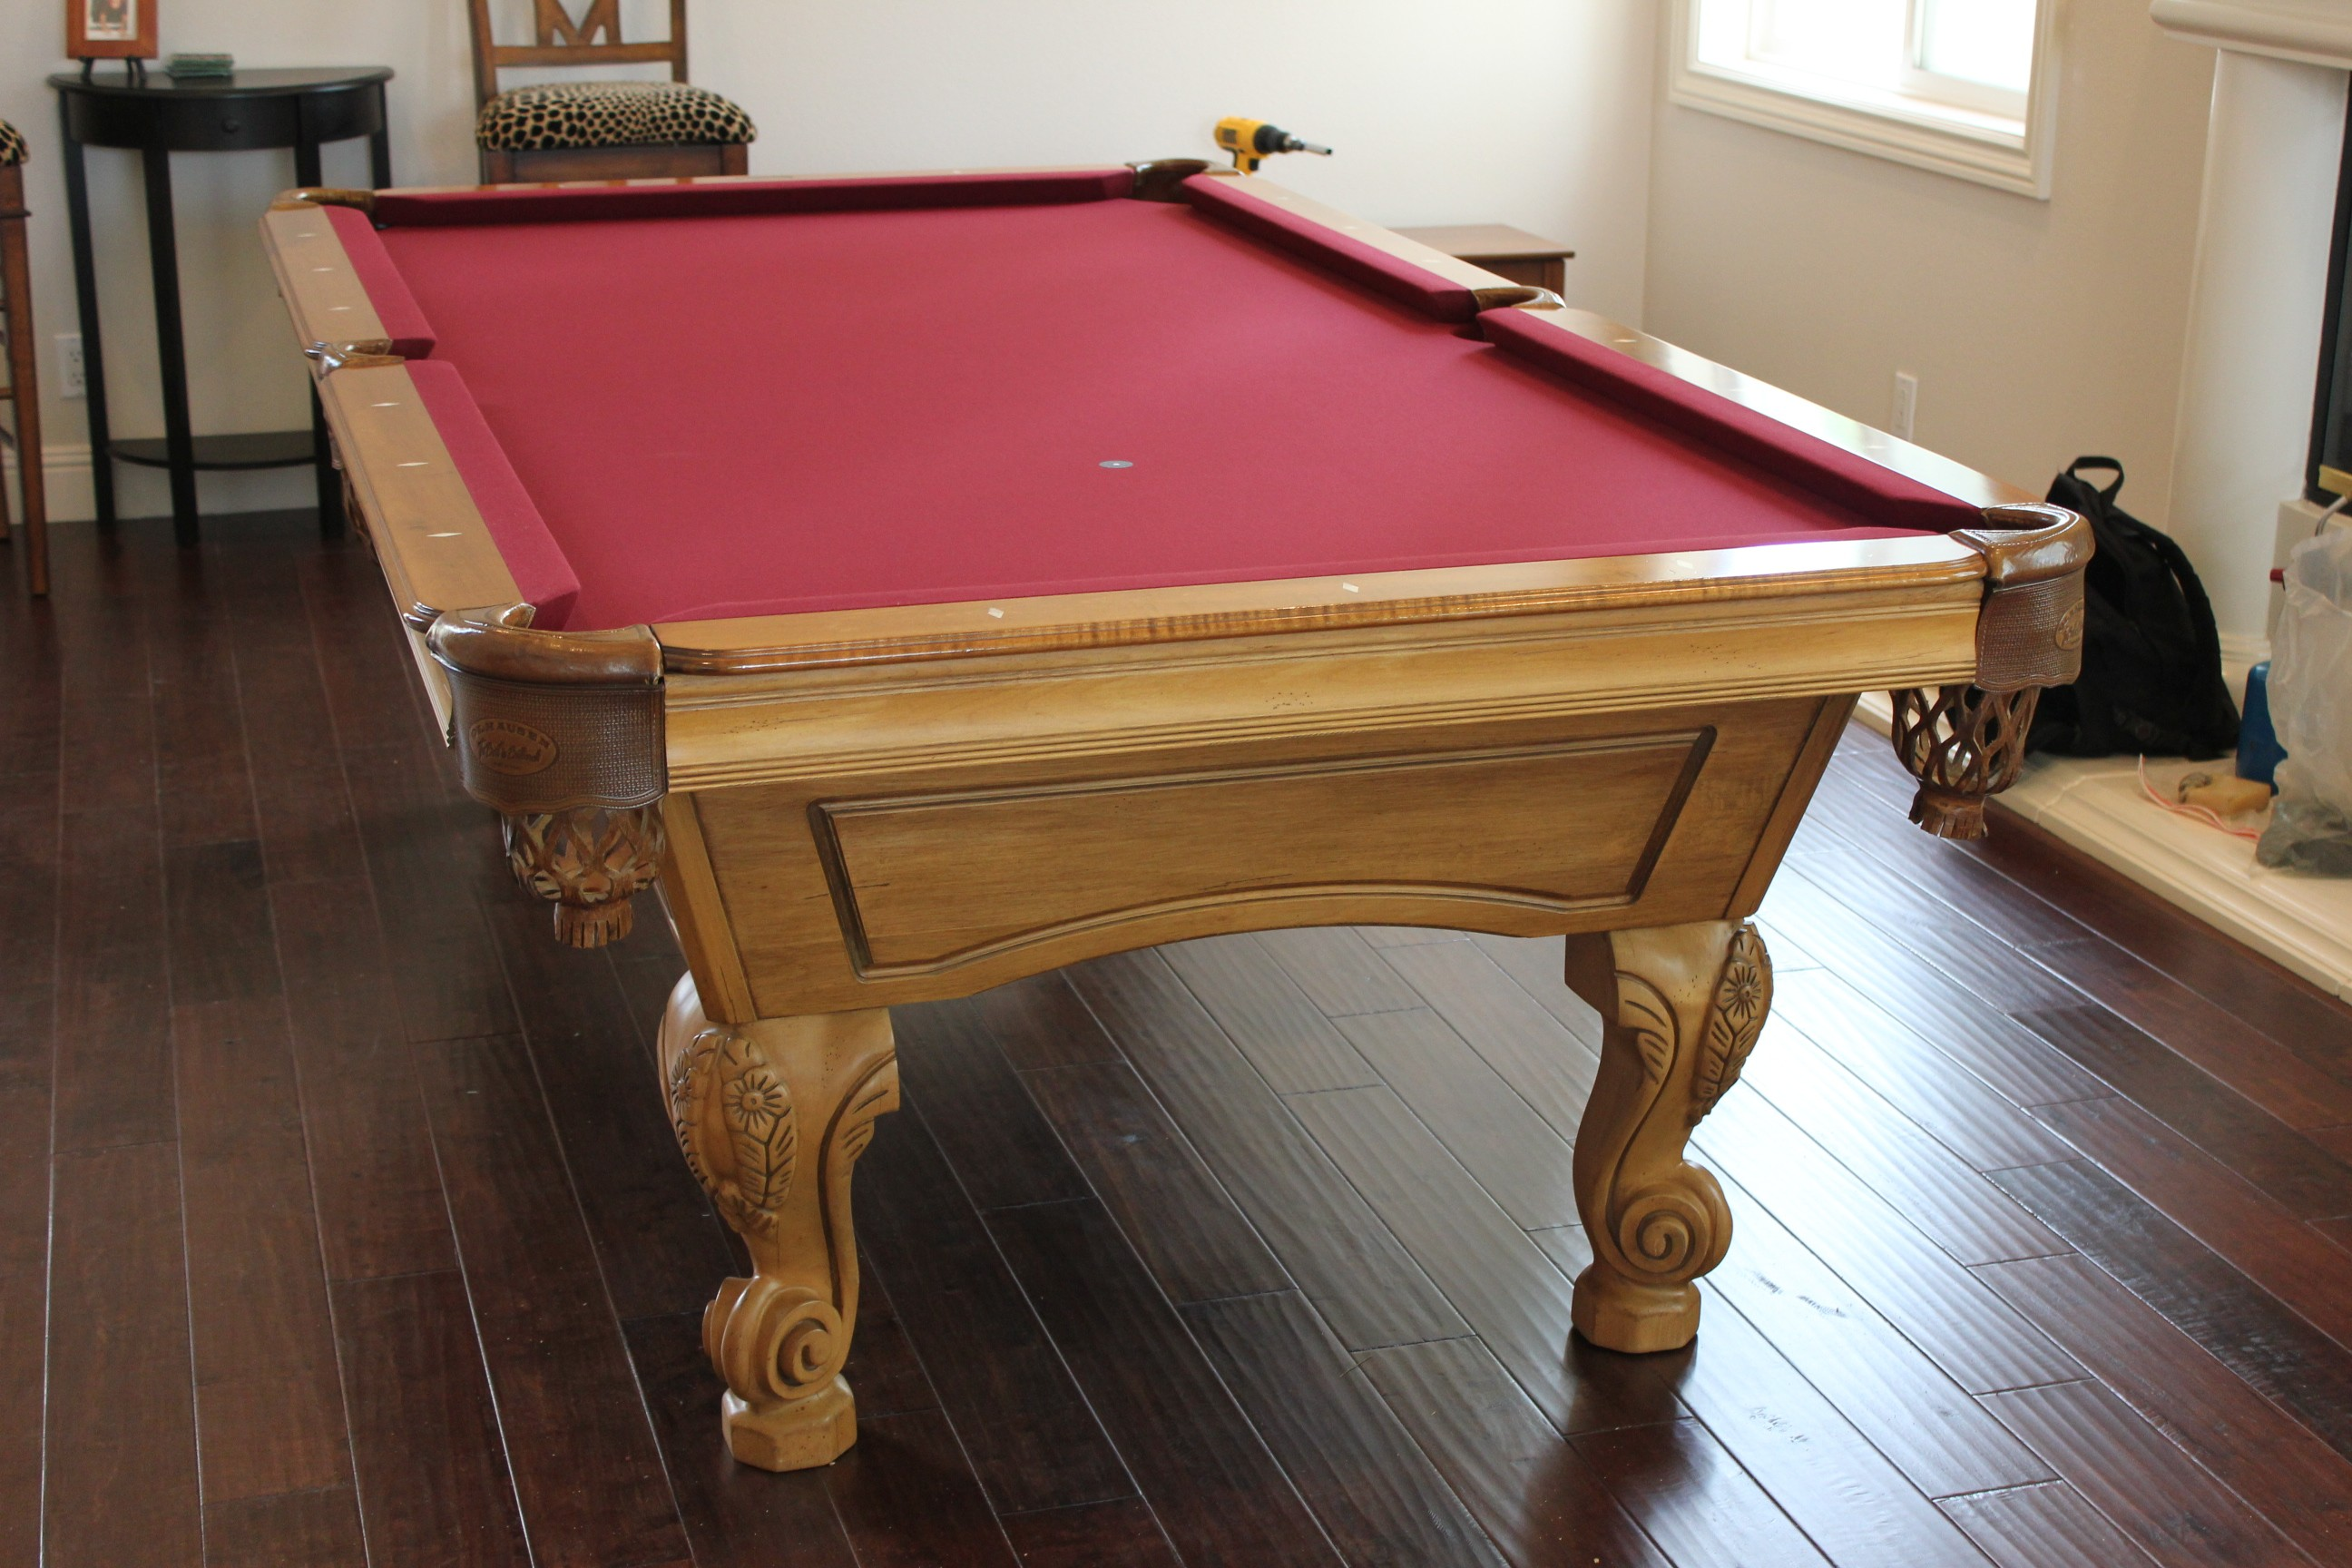 Does Pool Table Felt Color Affect My Game? | DK Billiards